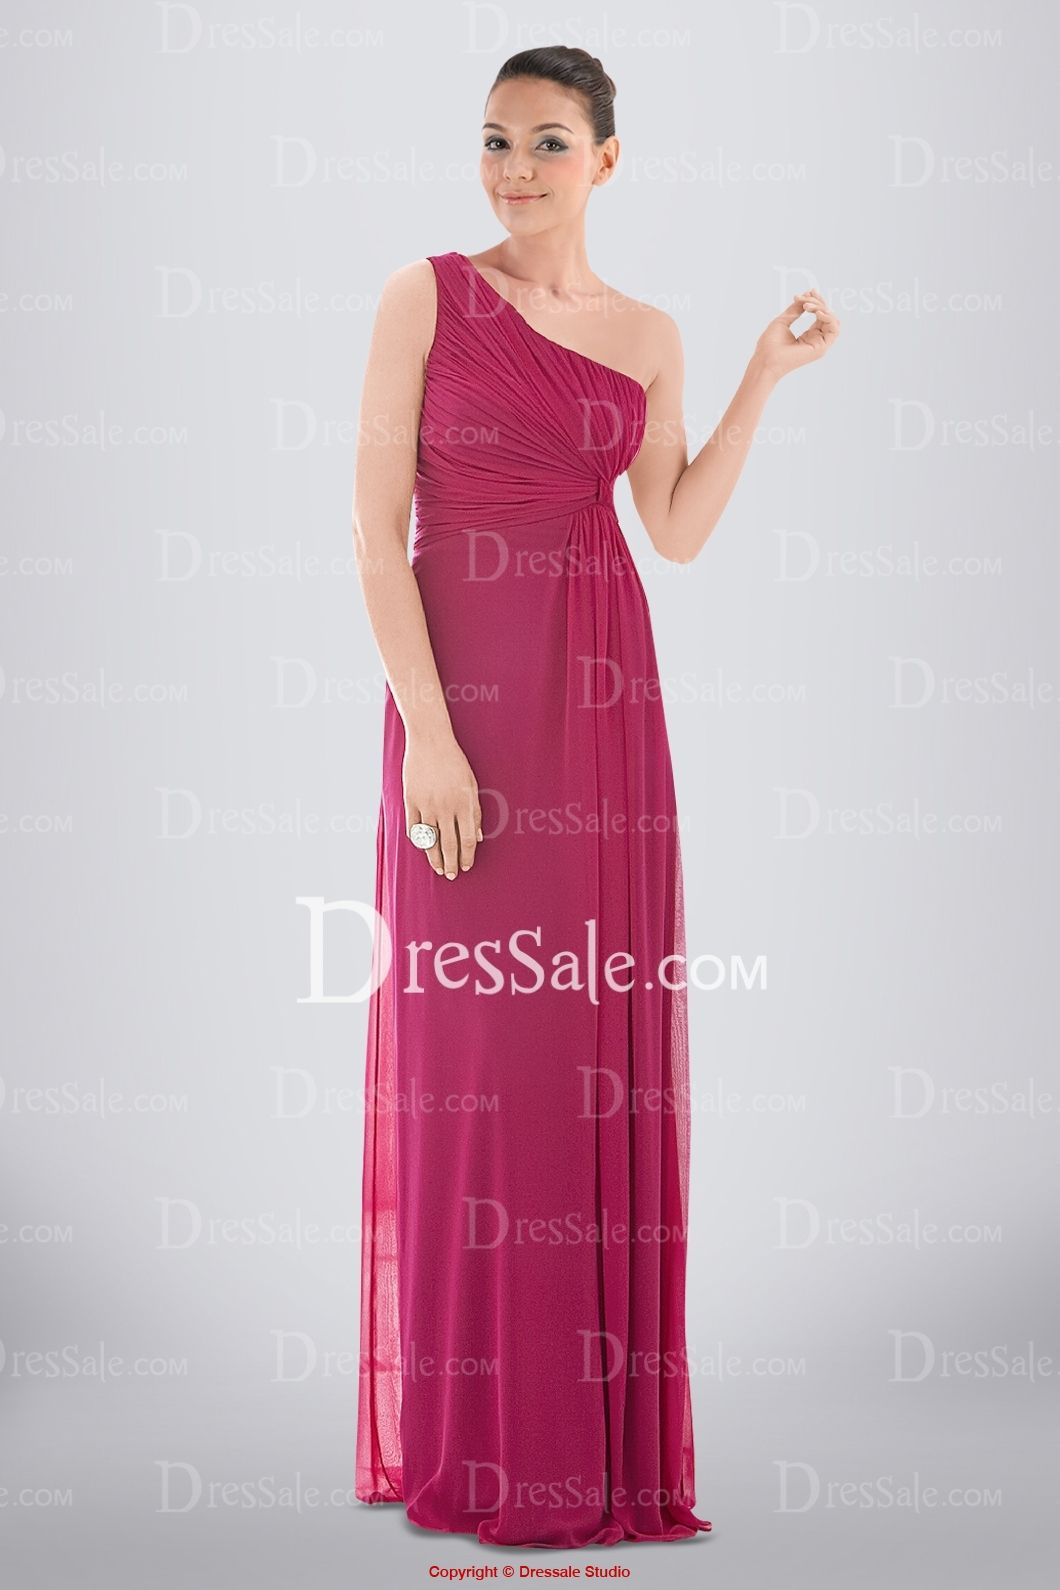 Fantastic One-shoulder Column Chiffon Bridesmaid Dress with Ruched Bodice and Side-drapes